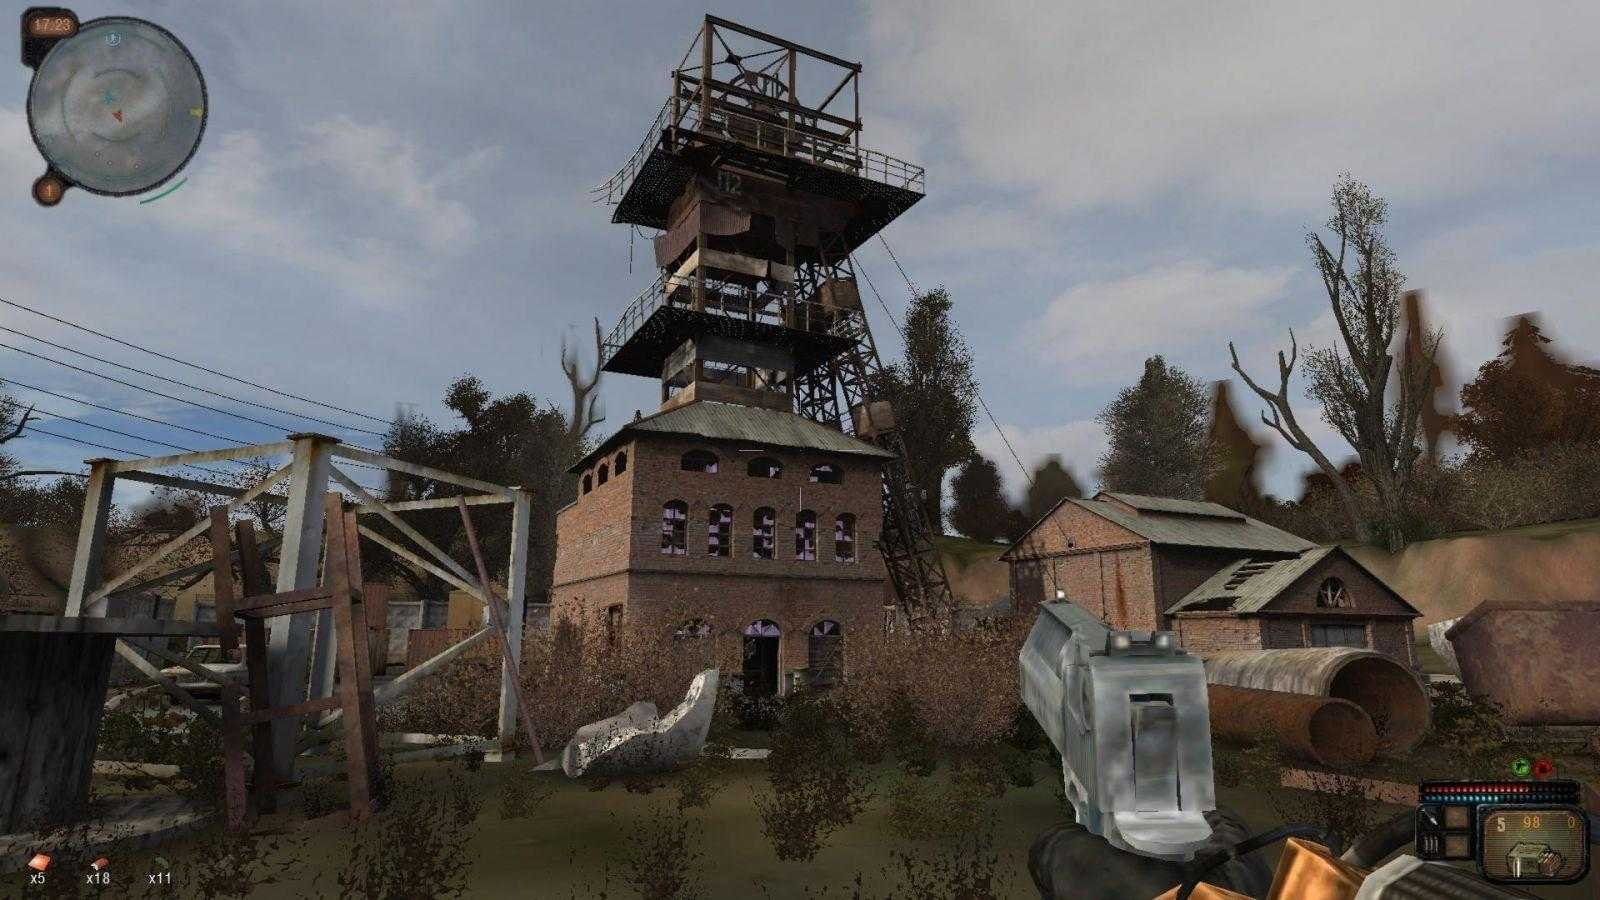 Гайд по S.T.A.L.K.E.R. Call of Chernobyl (ss brain 08 17 15 23 38 15 l10 red forest)